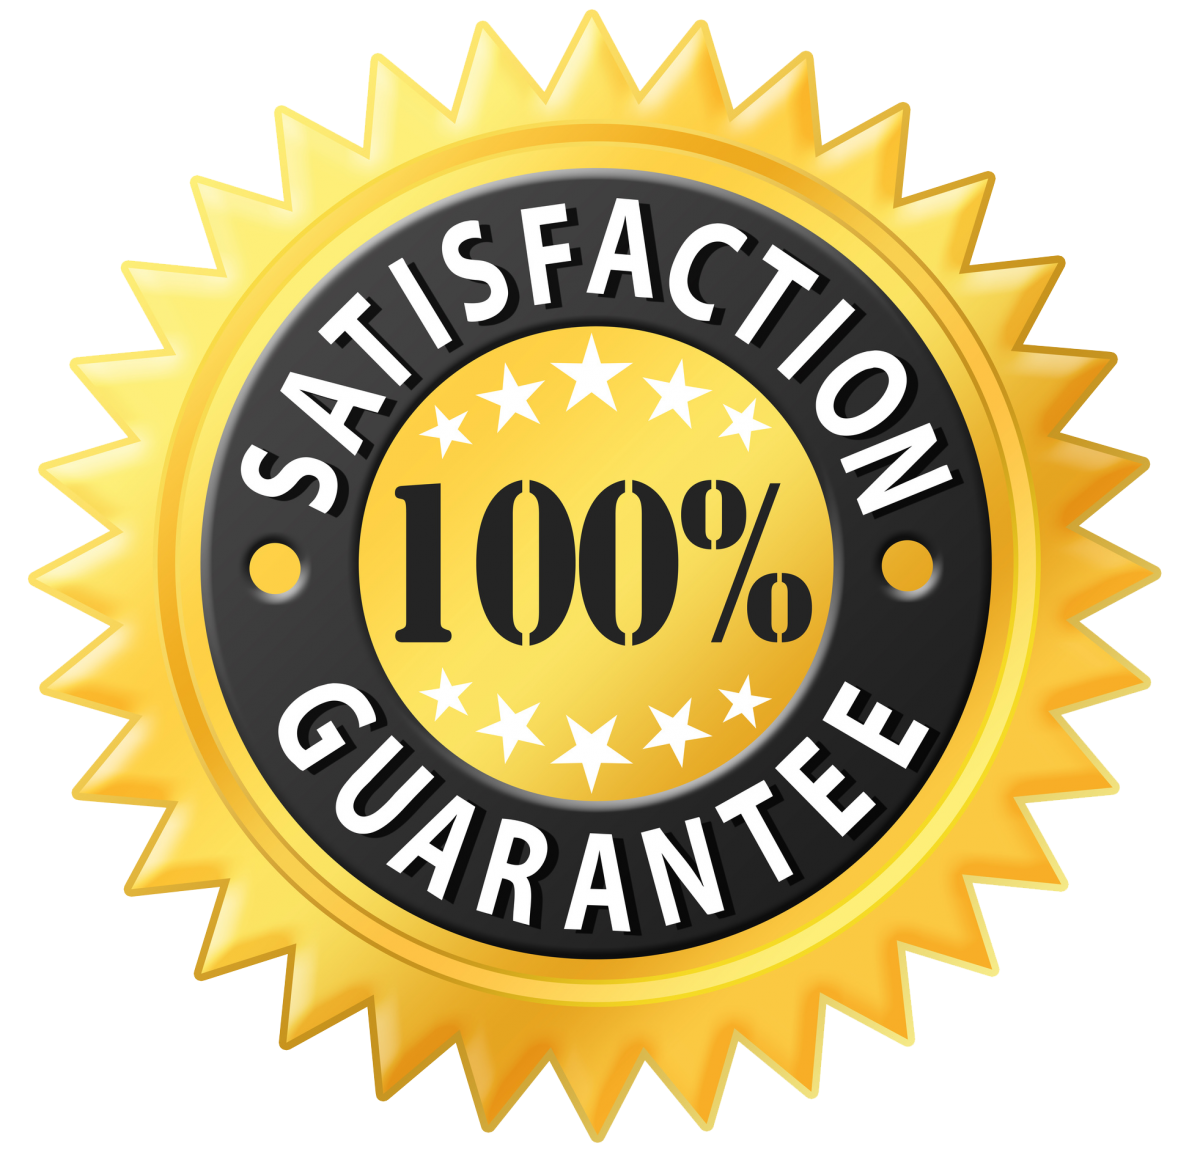 Guarantee badge png. Transparent images all free